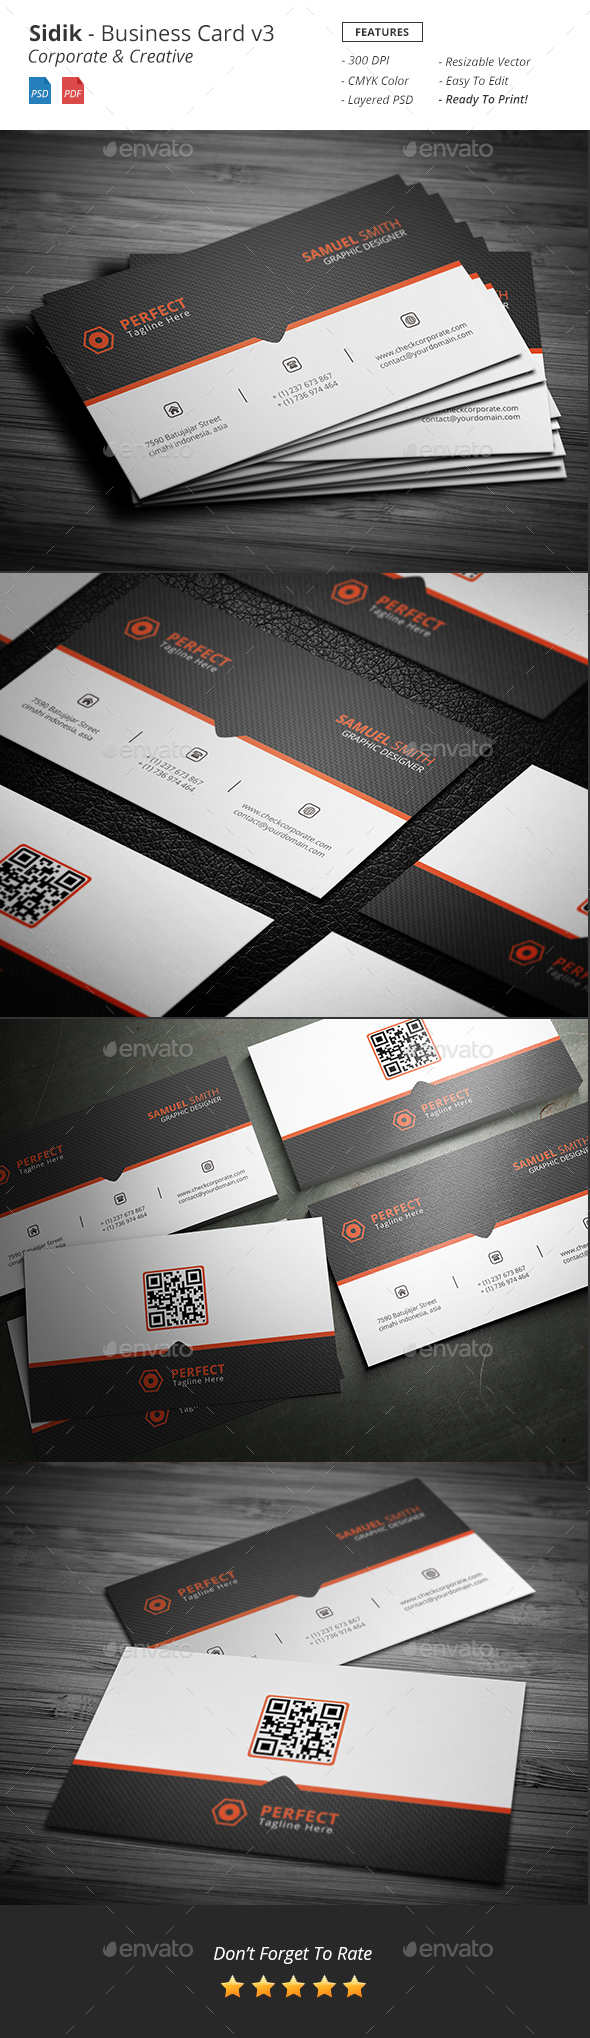 Sidik - Creative Business Card v3 - Corporate Business Cards